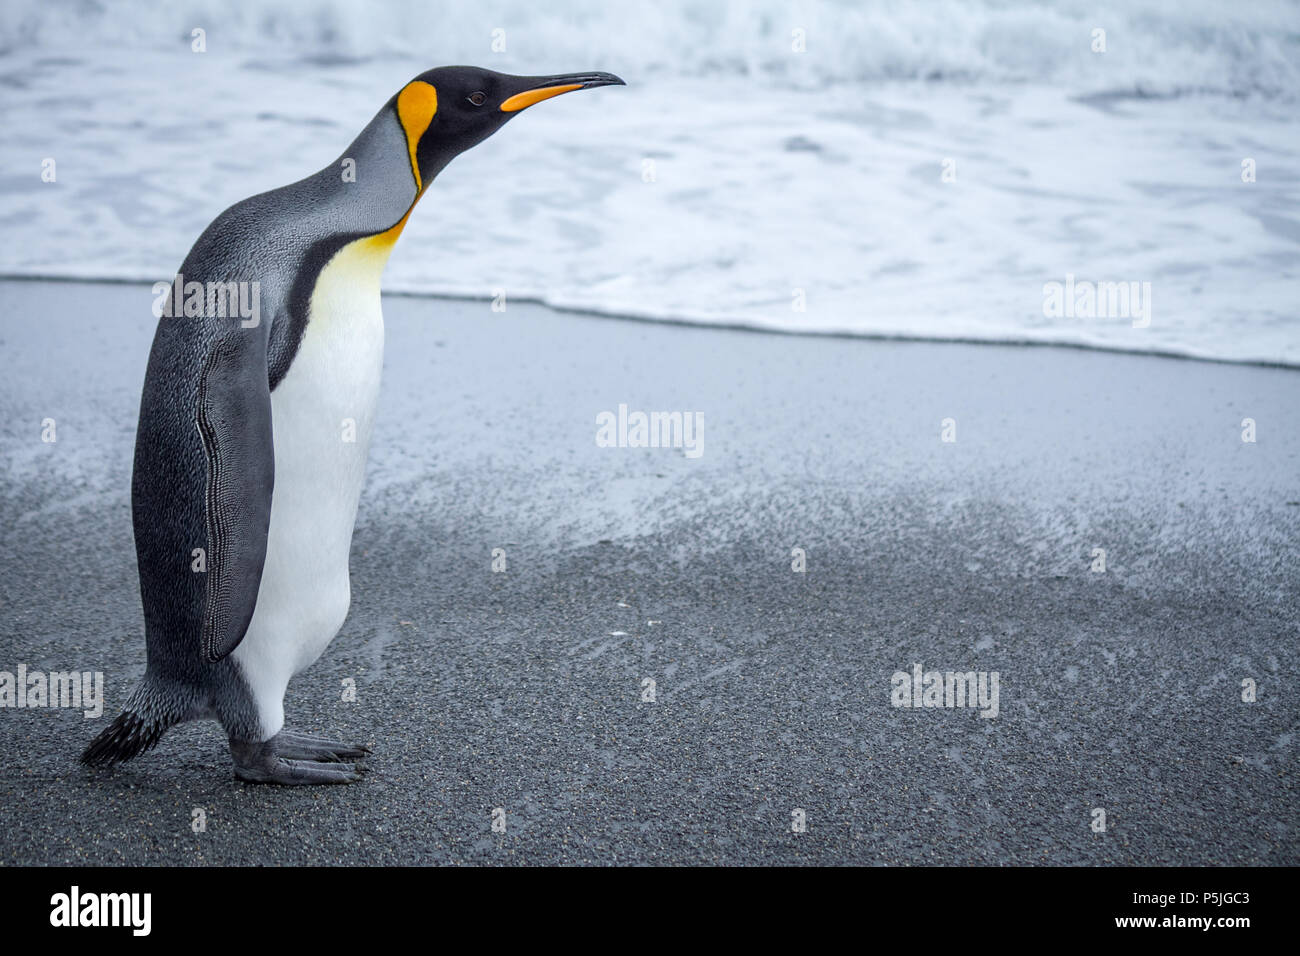 Single King Penguin on beach, left of frame looking right - Stock Image